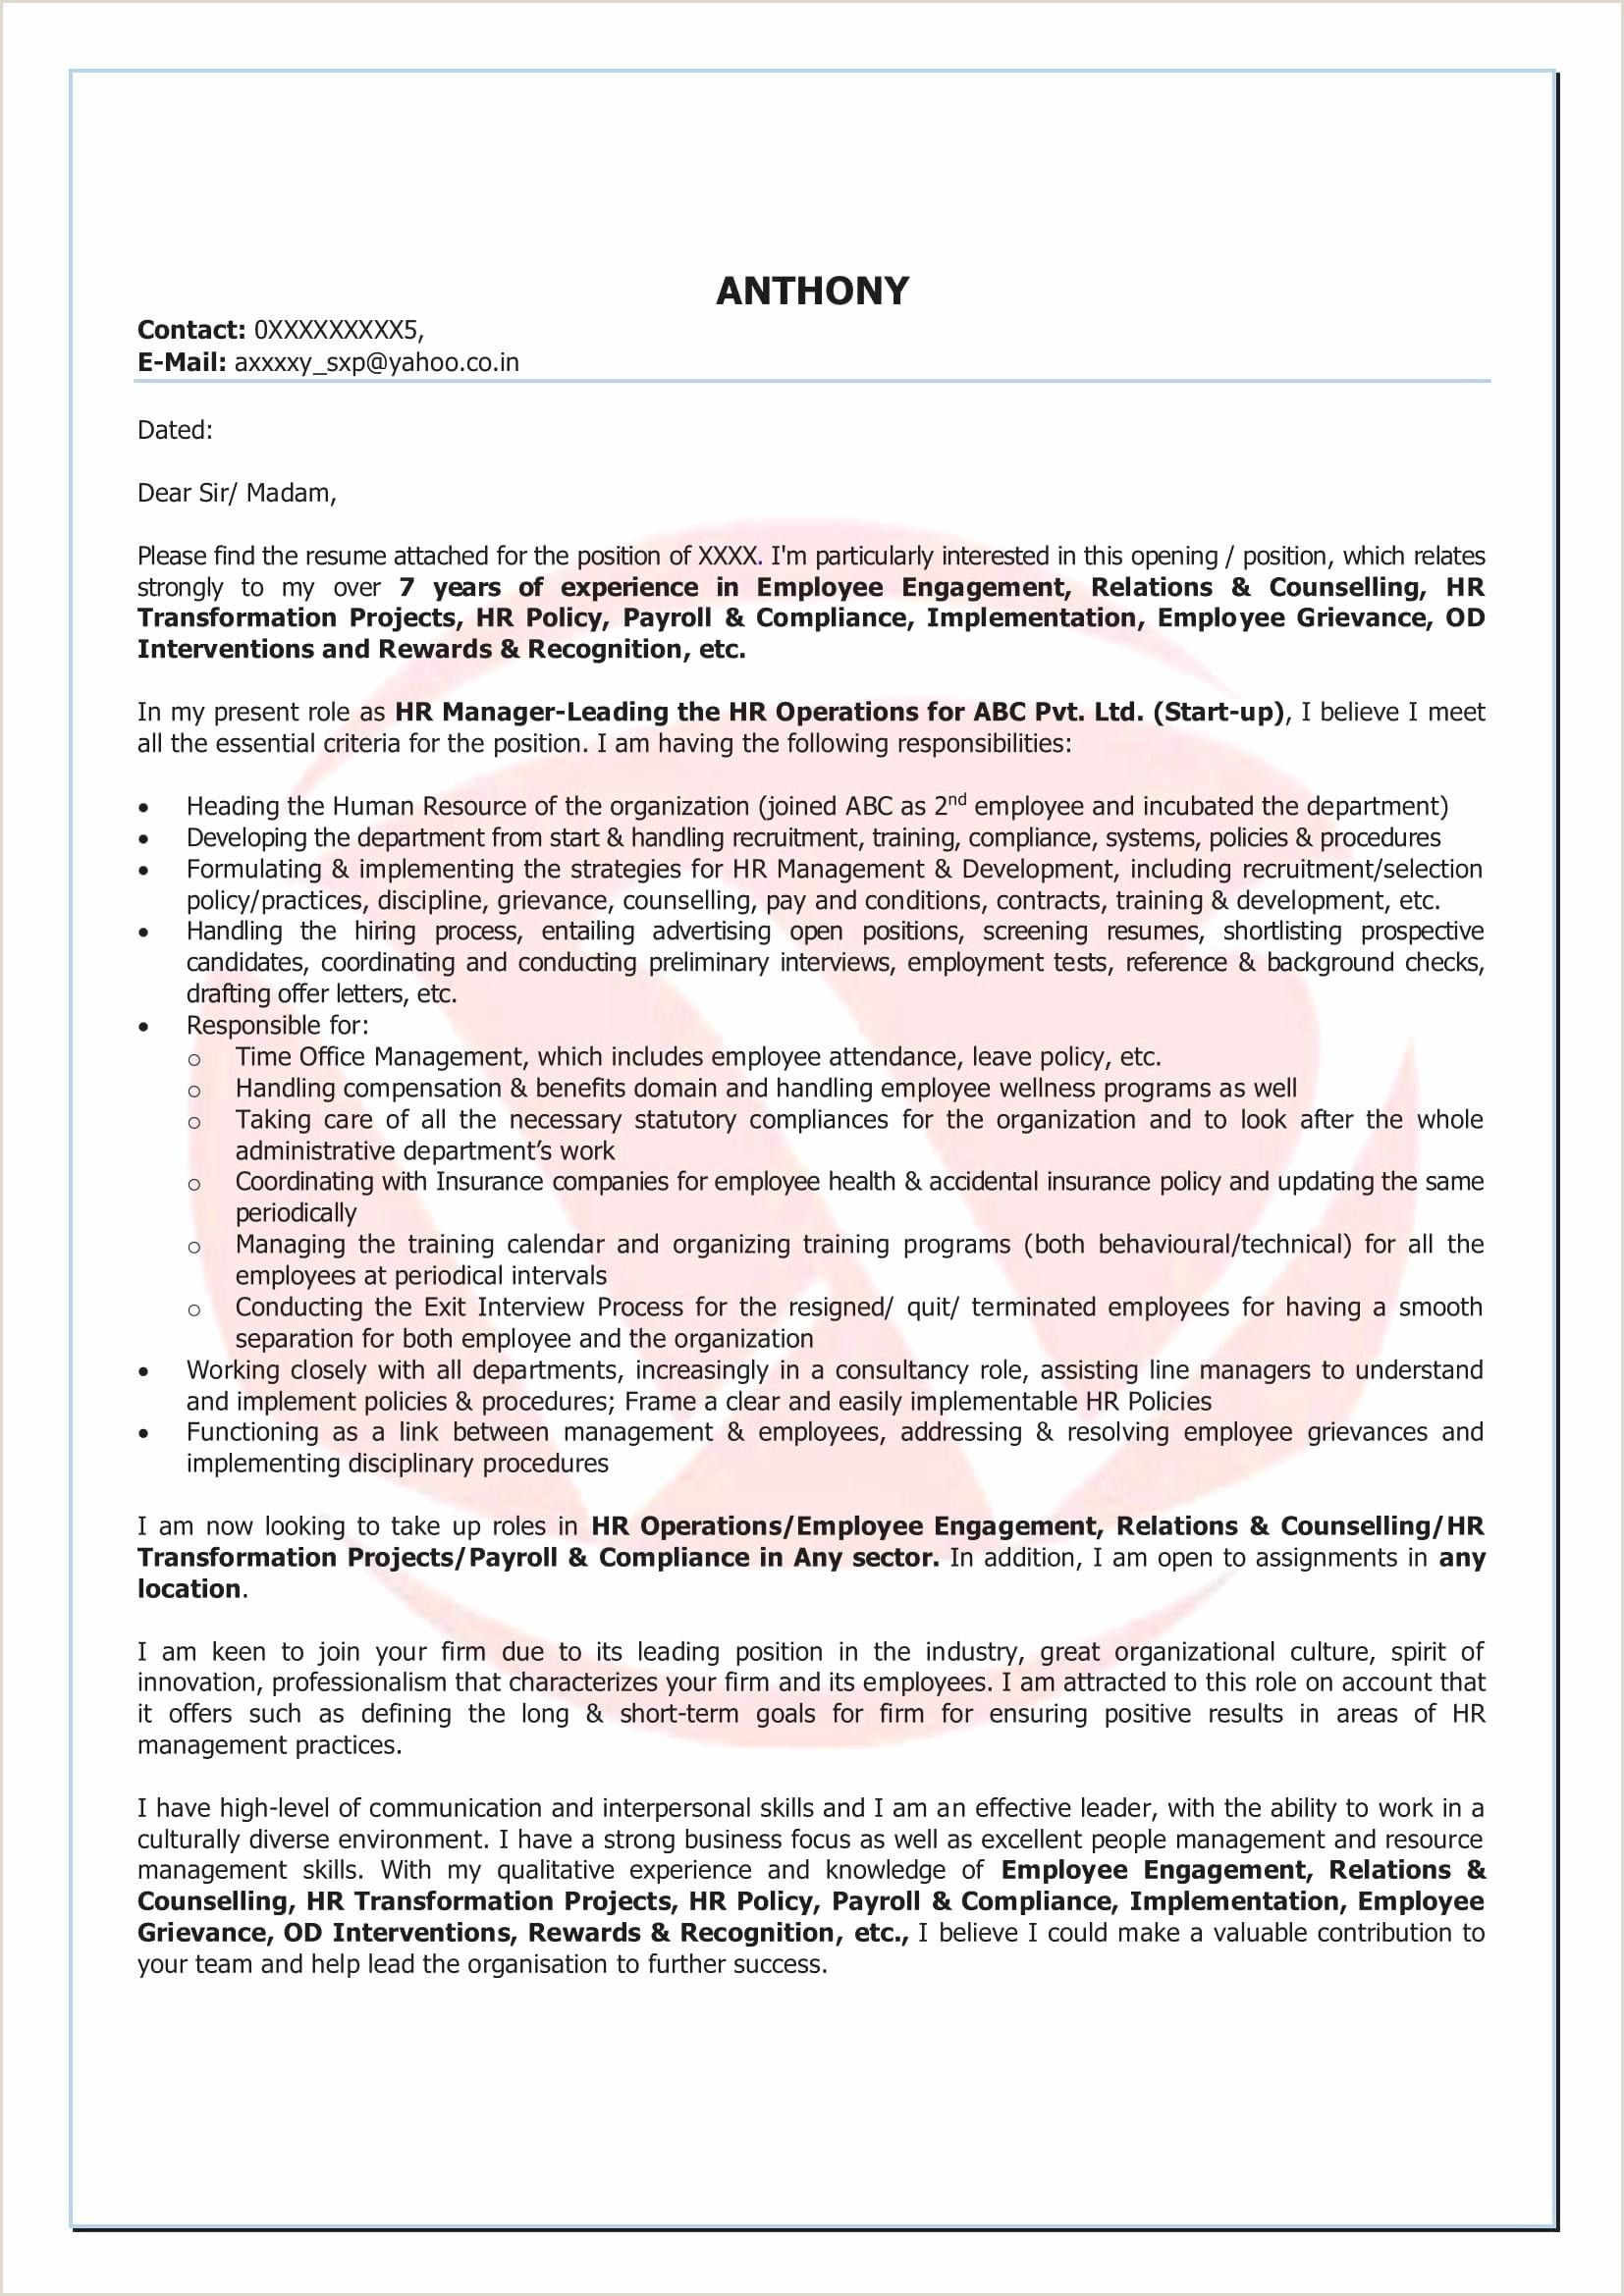 10 executive cover letter for resume